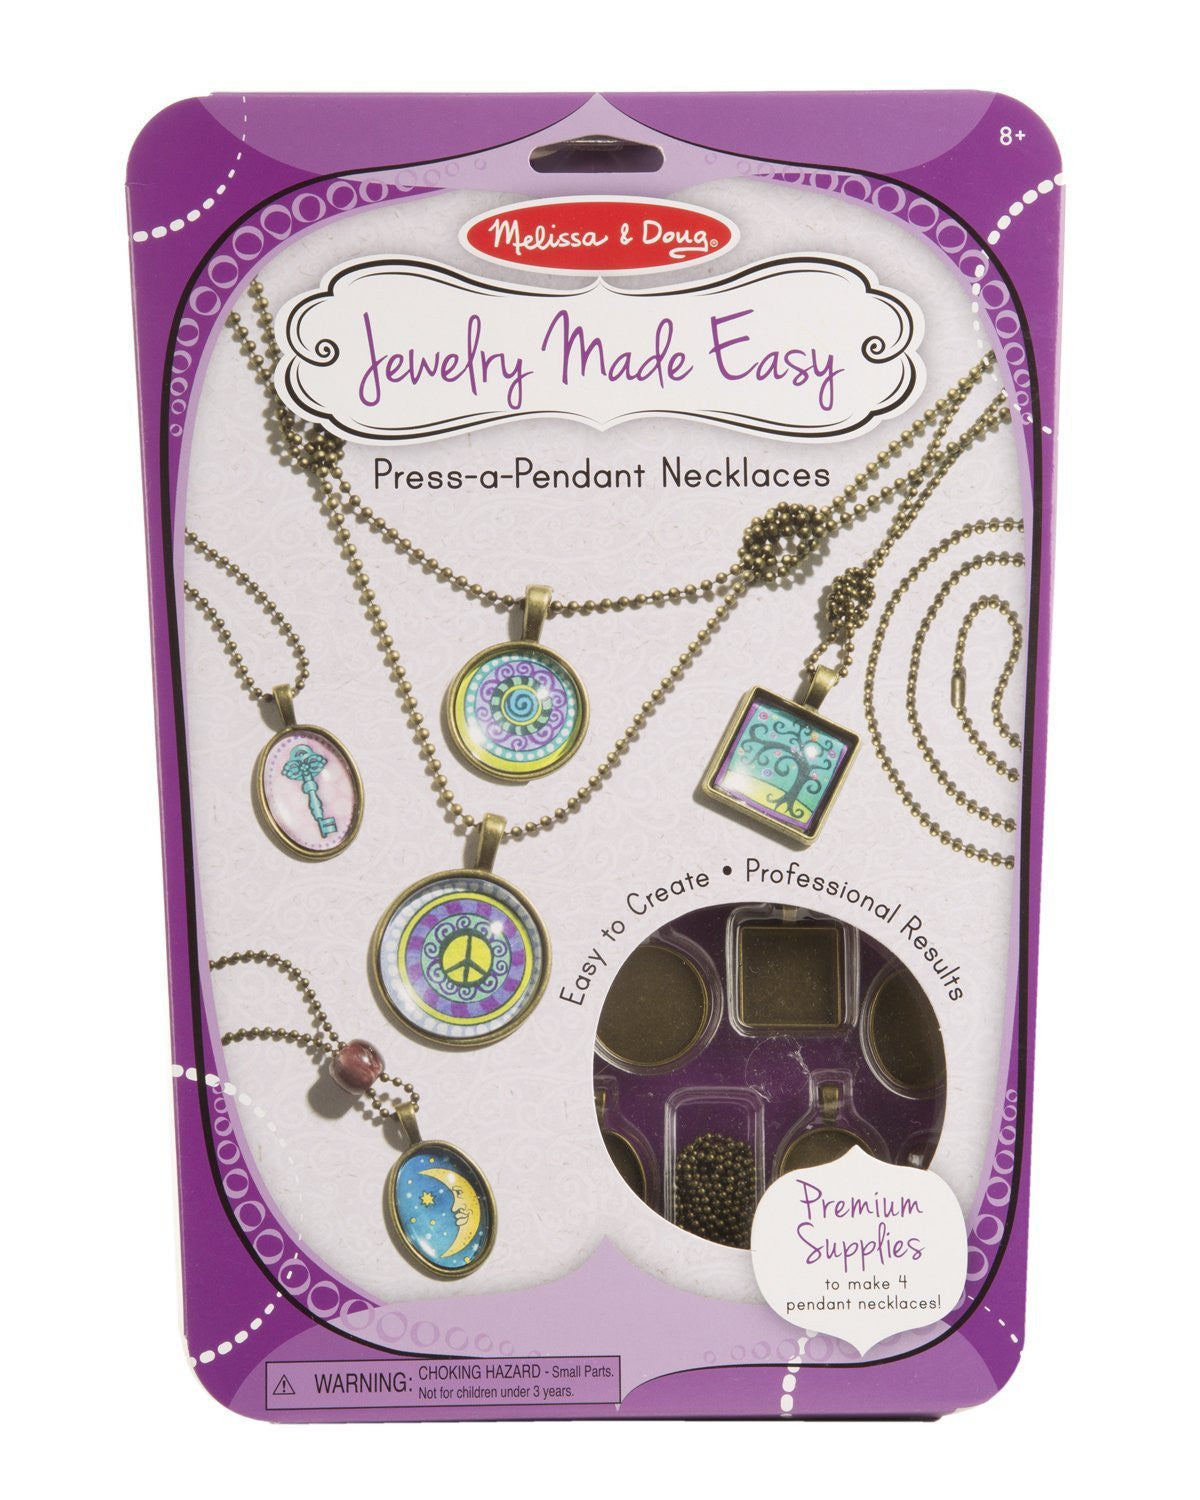 Jewelry Made Easy - Press-a-Pendant Necklaces 9471